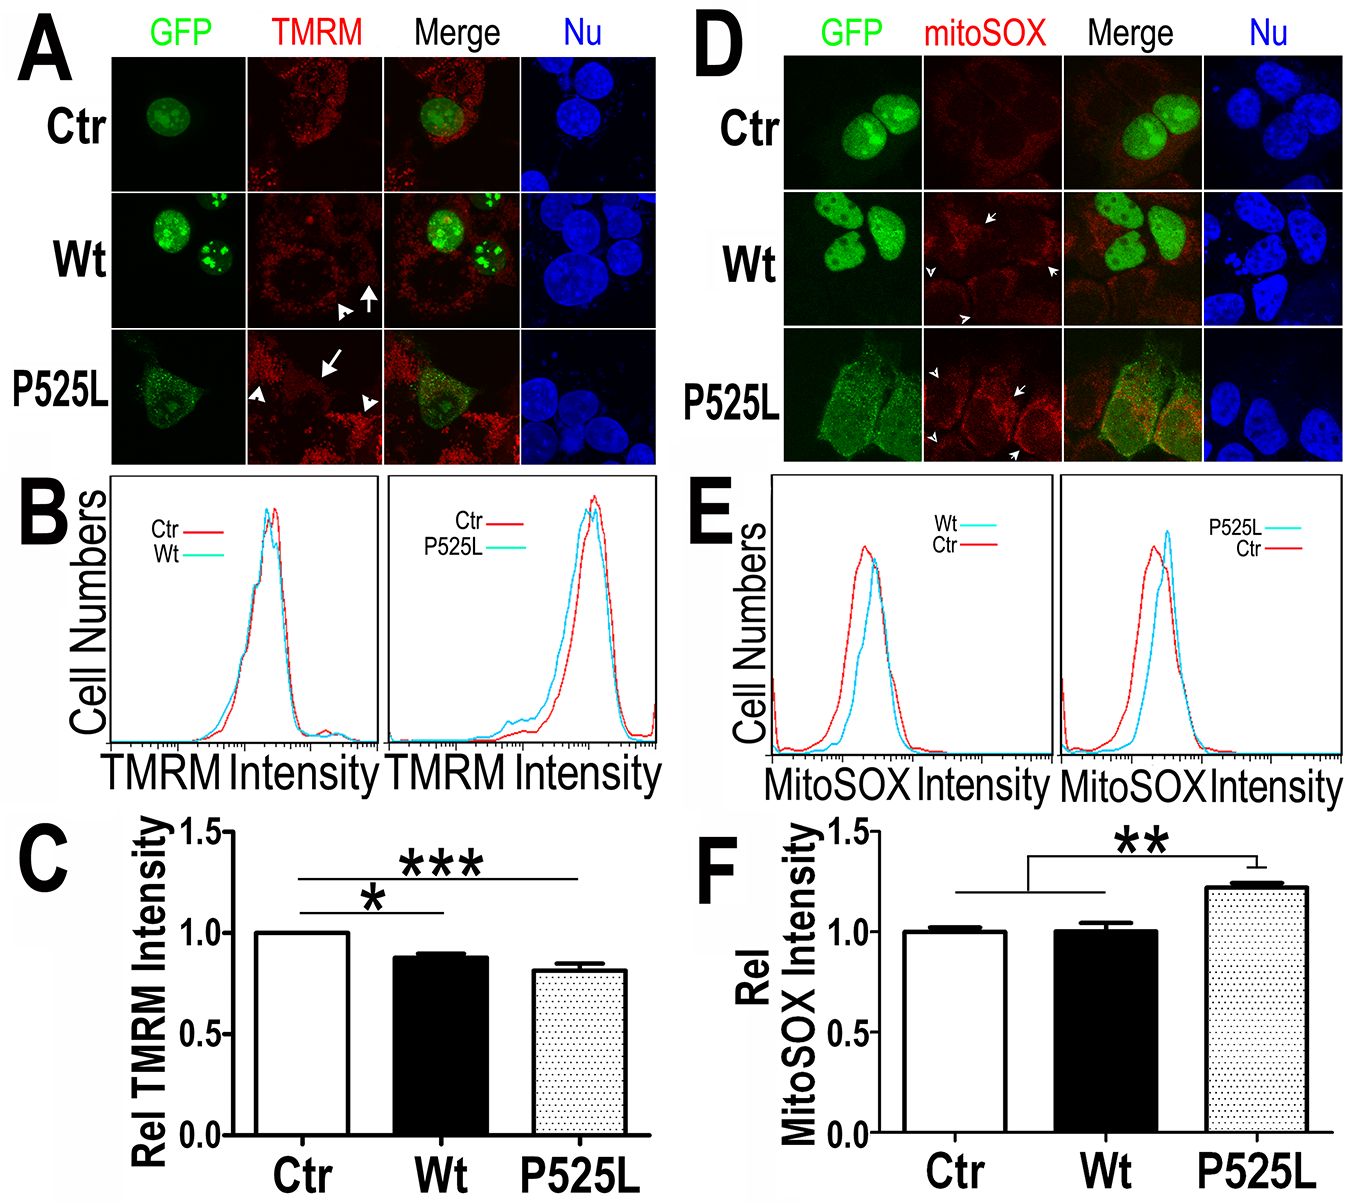 Increased expression of Wt- or P525L-mutant FUS induced a decrease in mitochondrial membrane potential and an increase in production of mitochondrial superoxide.